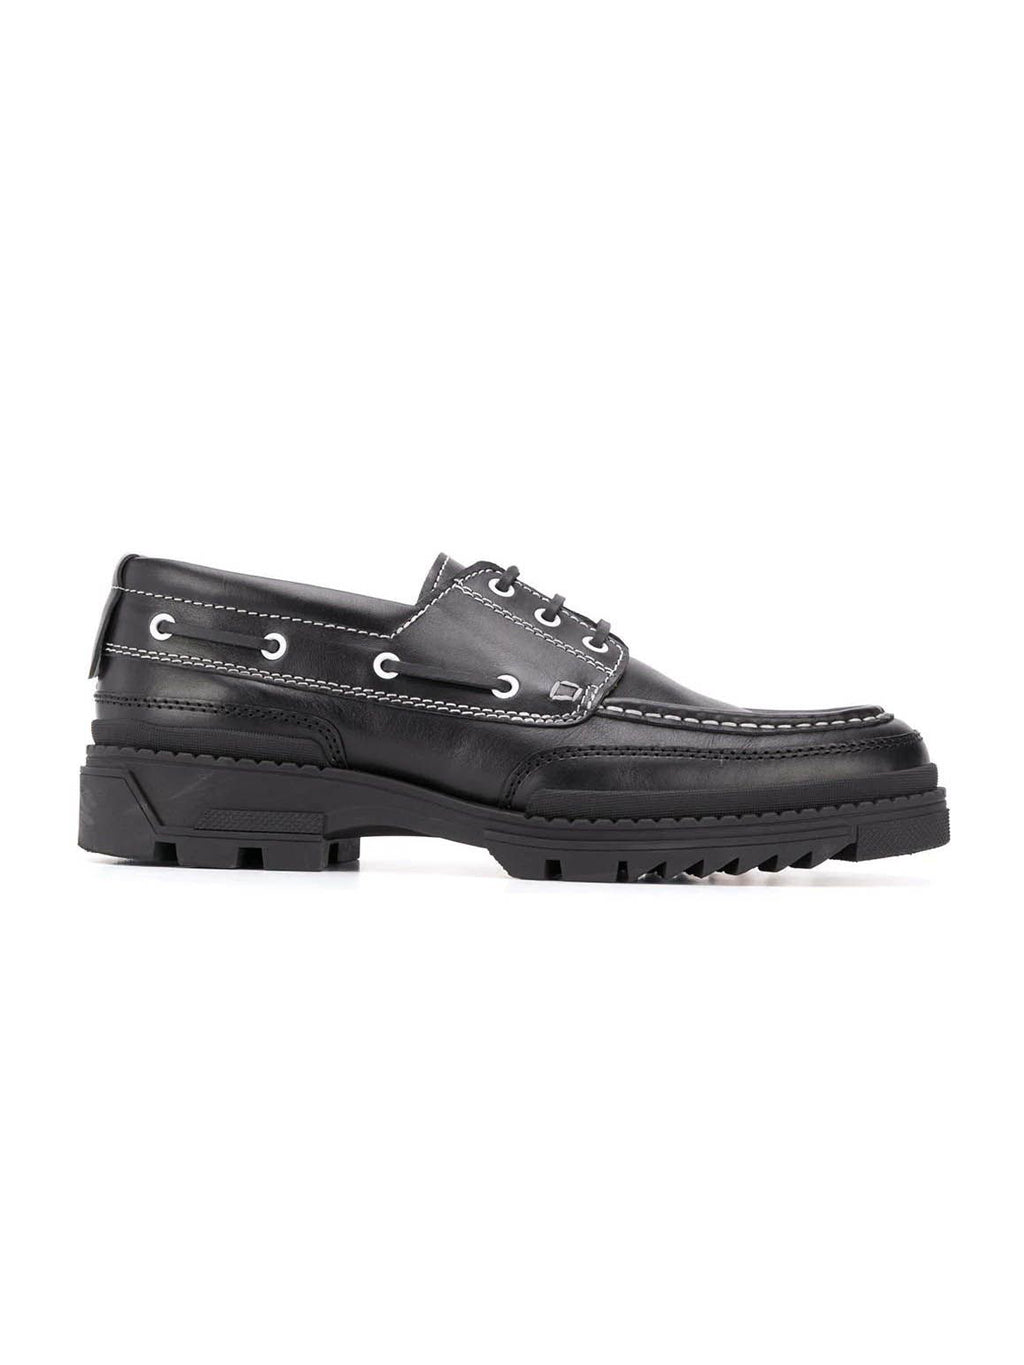 Black Boat Tractor Sole Shoes